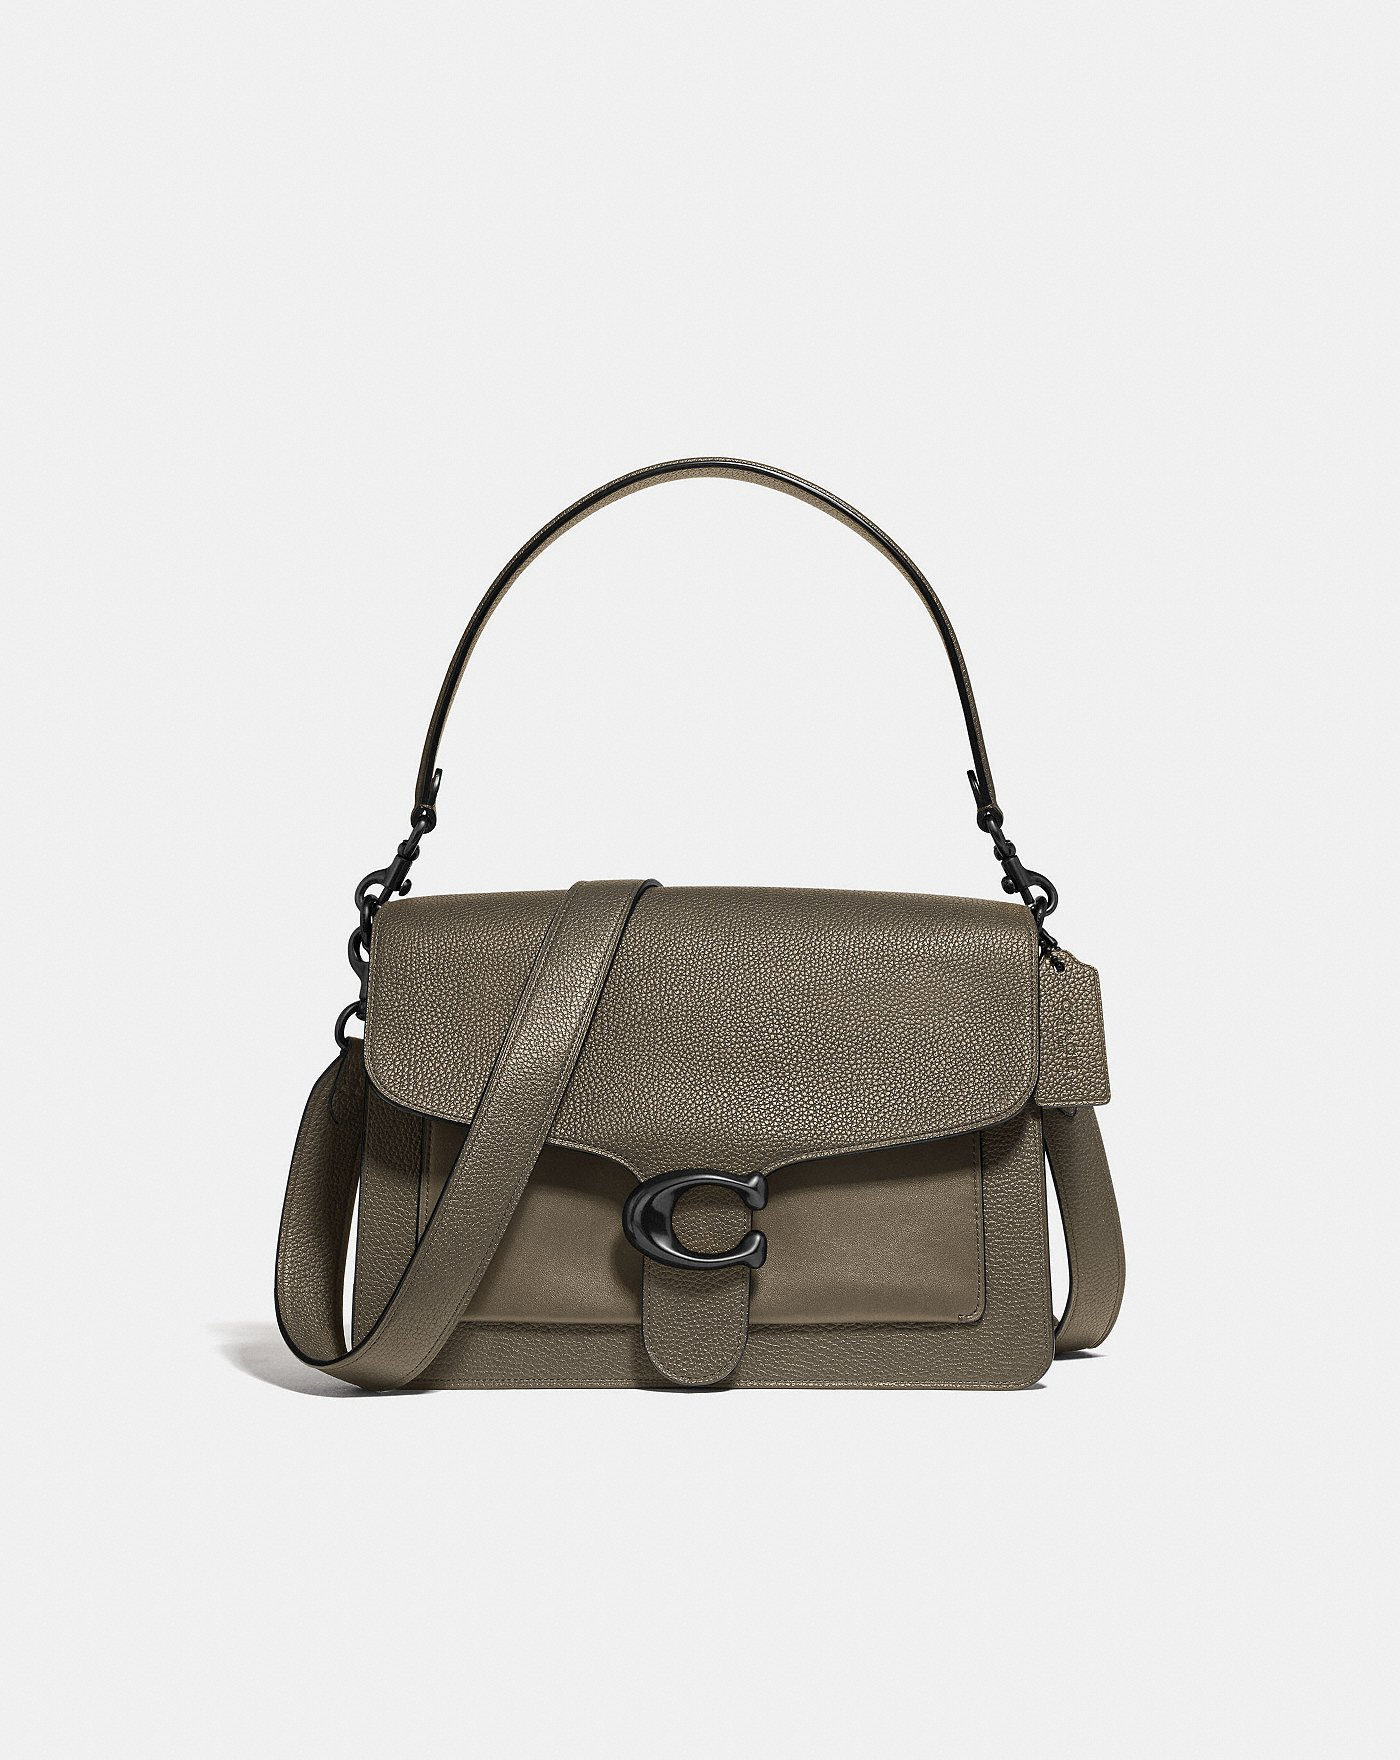 b6a8cfd9b0 Tabby Shoulder Bag | COACH